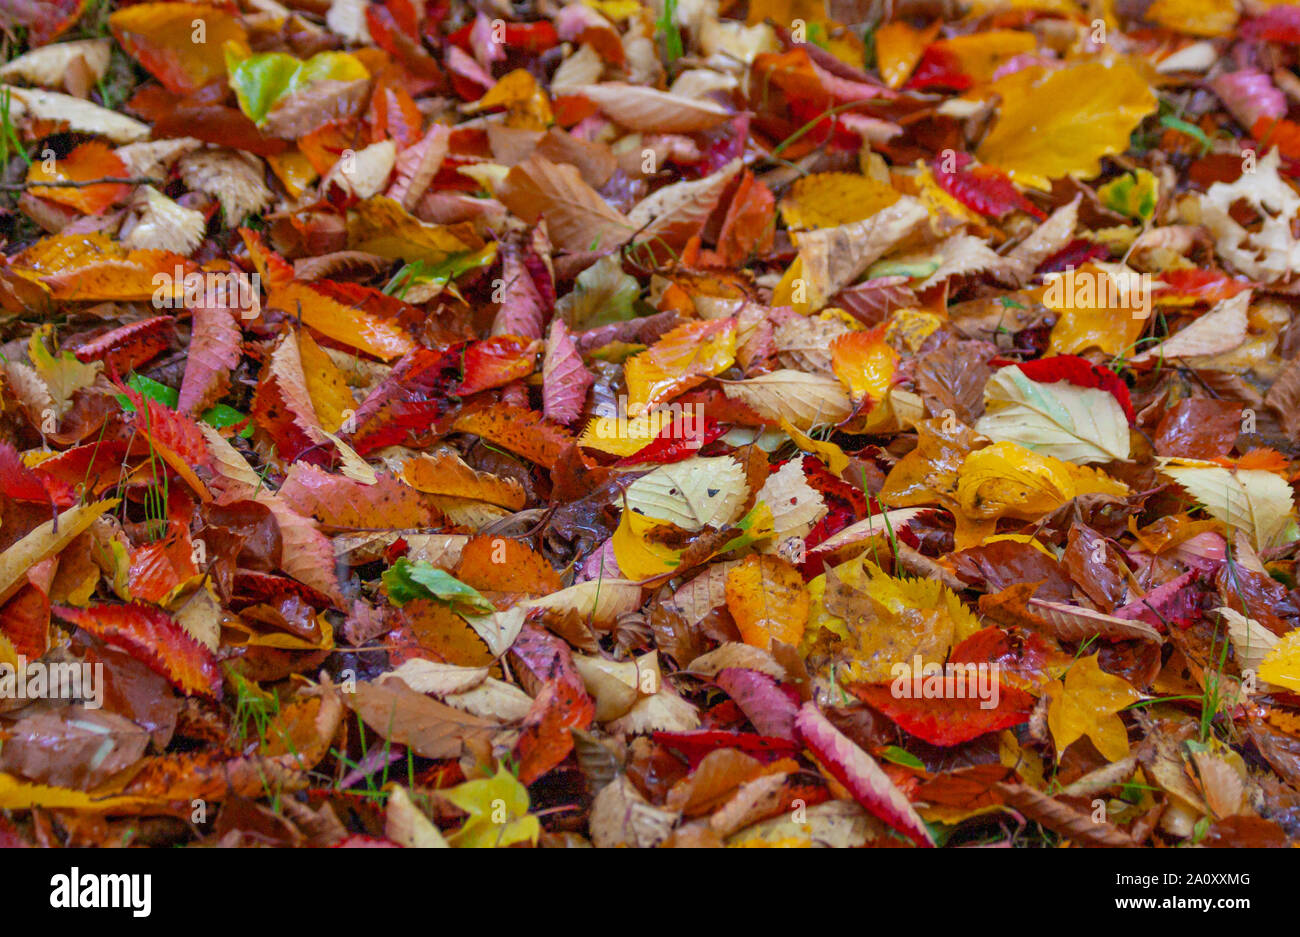 Autumn fall leaves on ground in red, yellow, orange and green colours. Colorful colourful seasonal outdoor foliage fall background Stock Photo